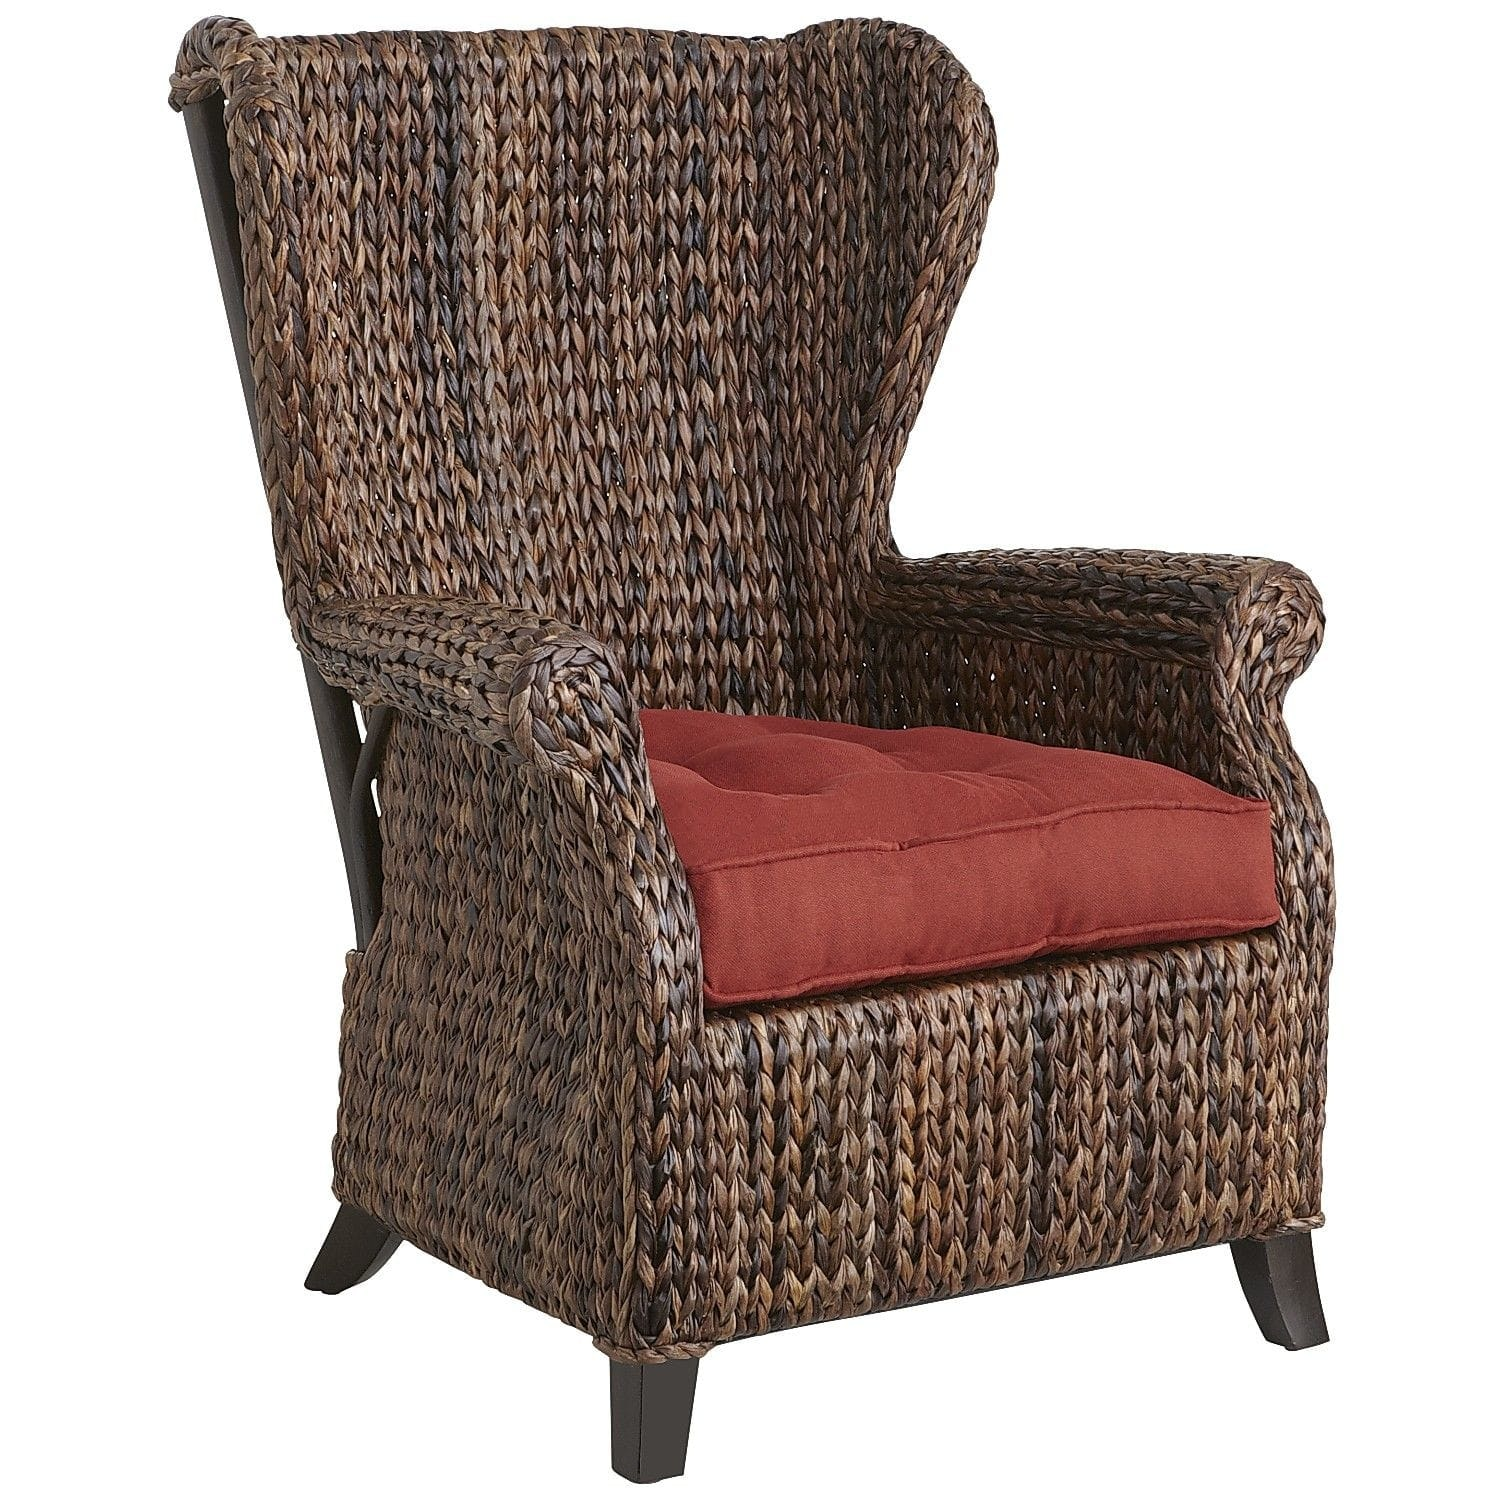 Pier One Wicker Furniture | Pier One Bistro Set | Wicker Chairs Pier One